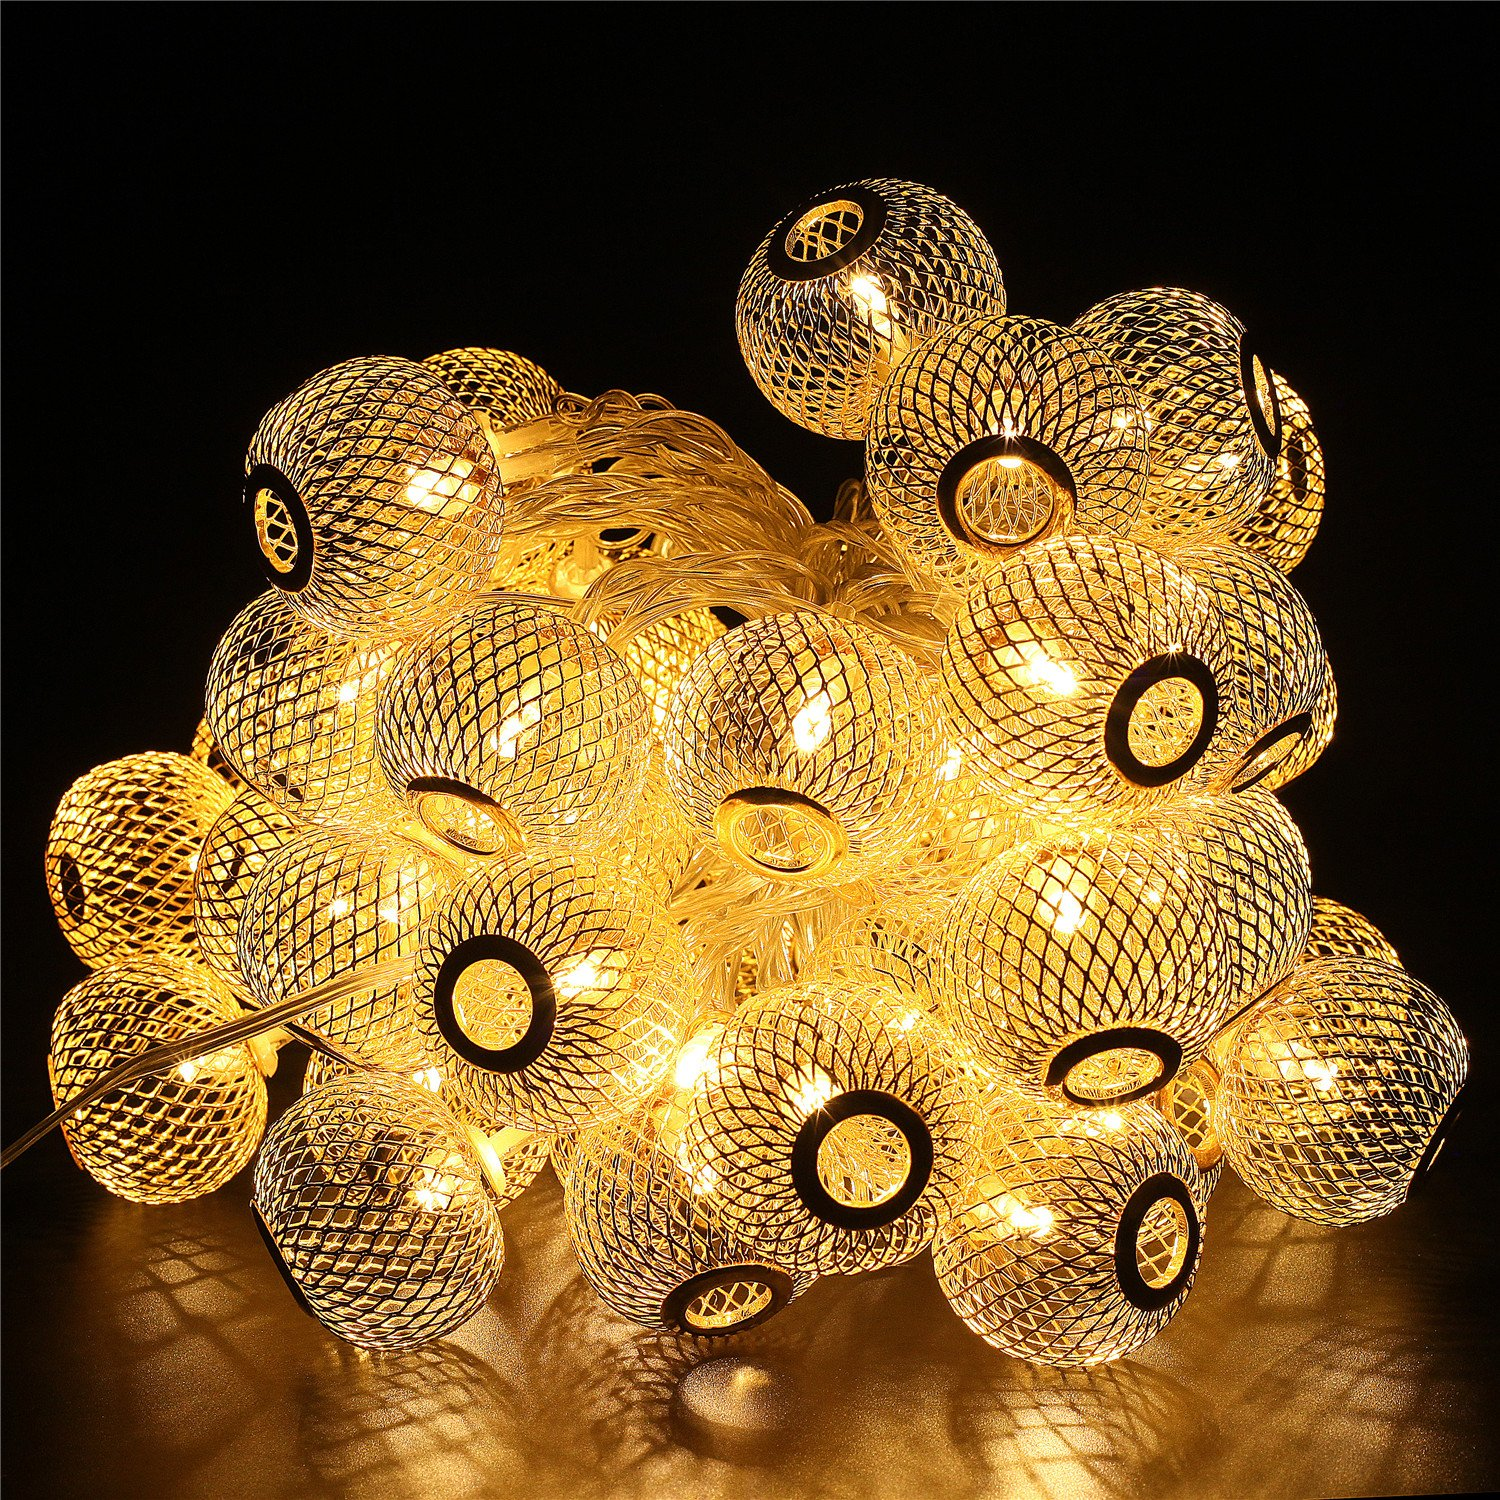 decor a art outdoor en ikea products lights decorative chain svartr with black gives gb light lighting nice led